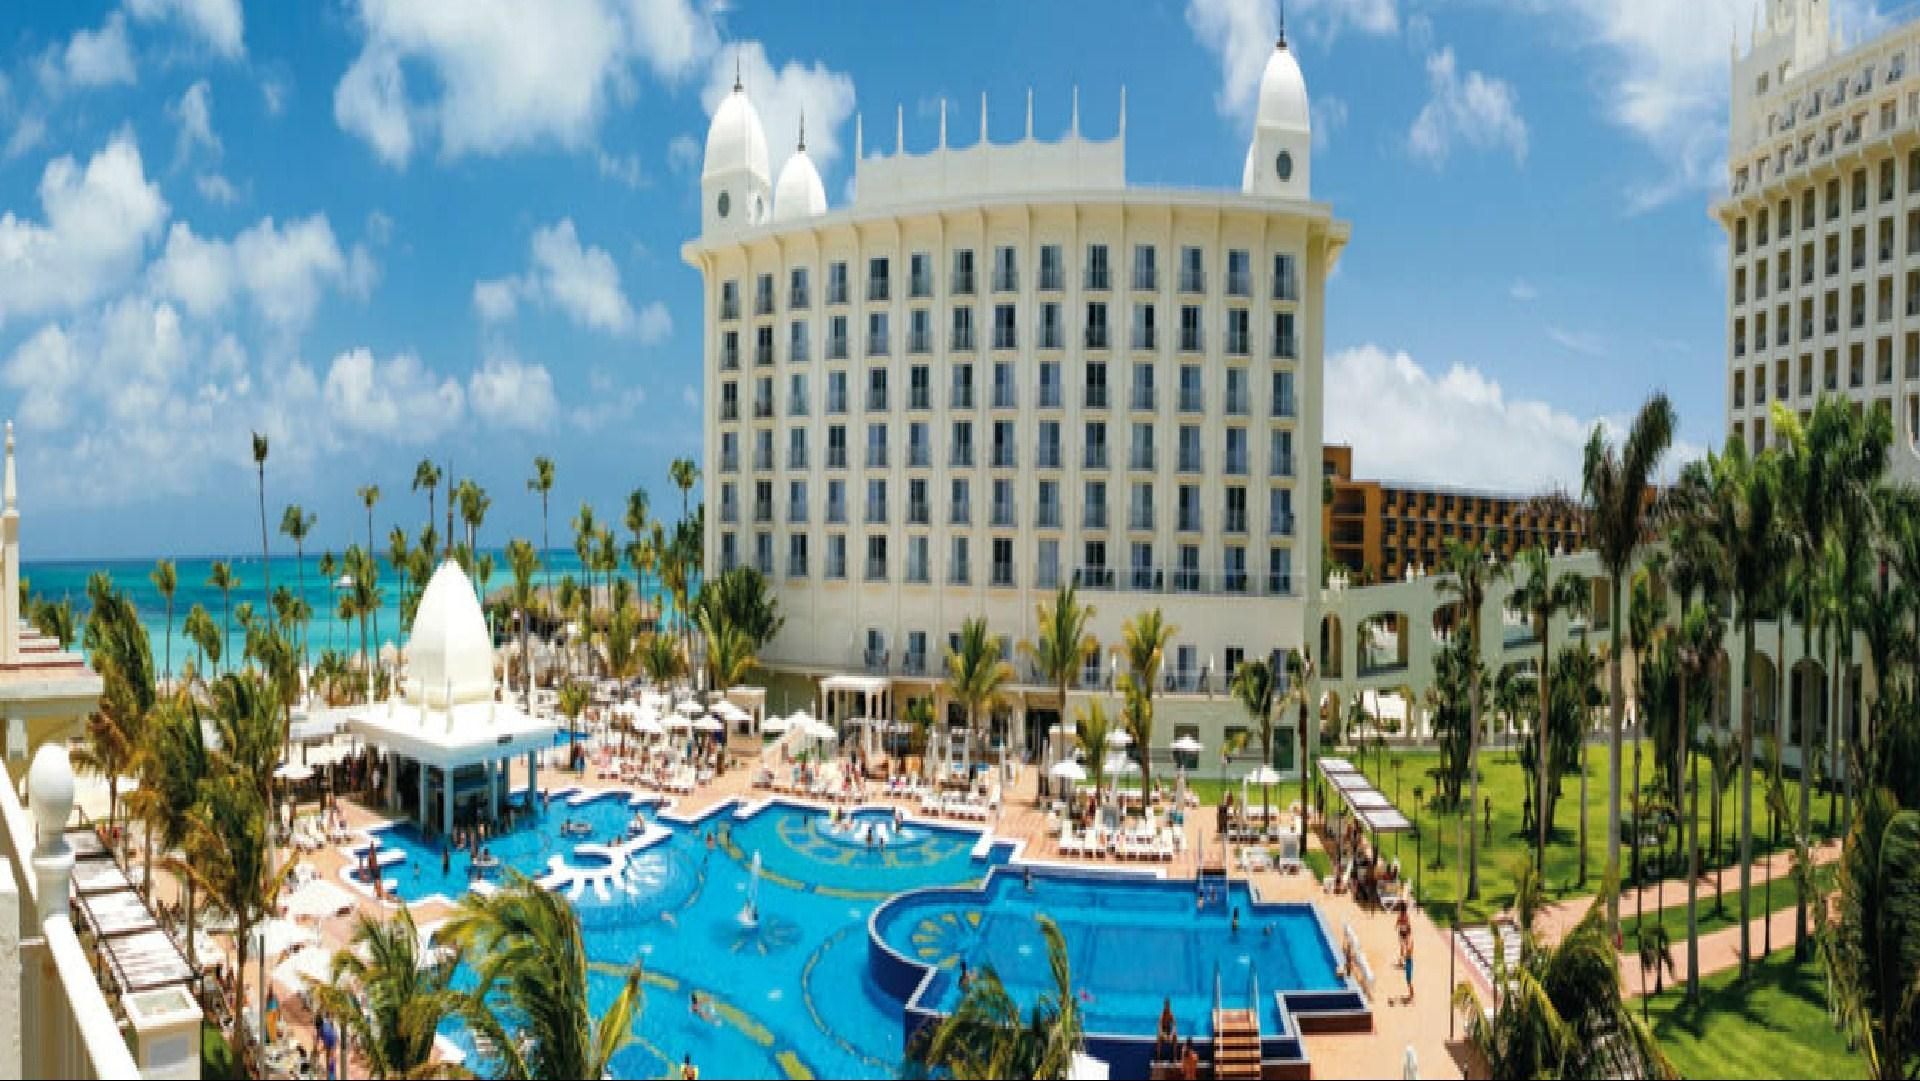 Meetings And Events At Hotel Riu Palace Aruba Palm Beach AW